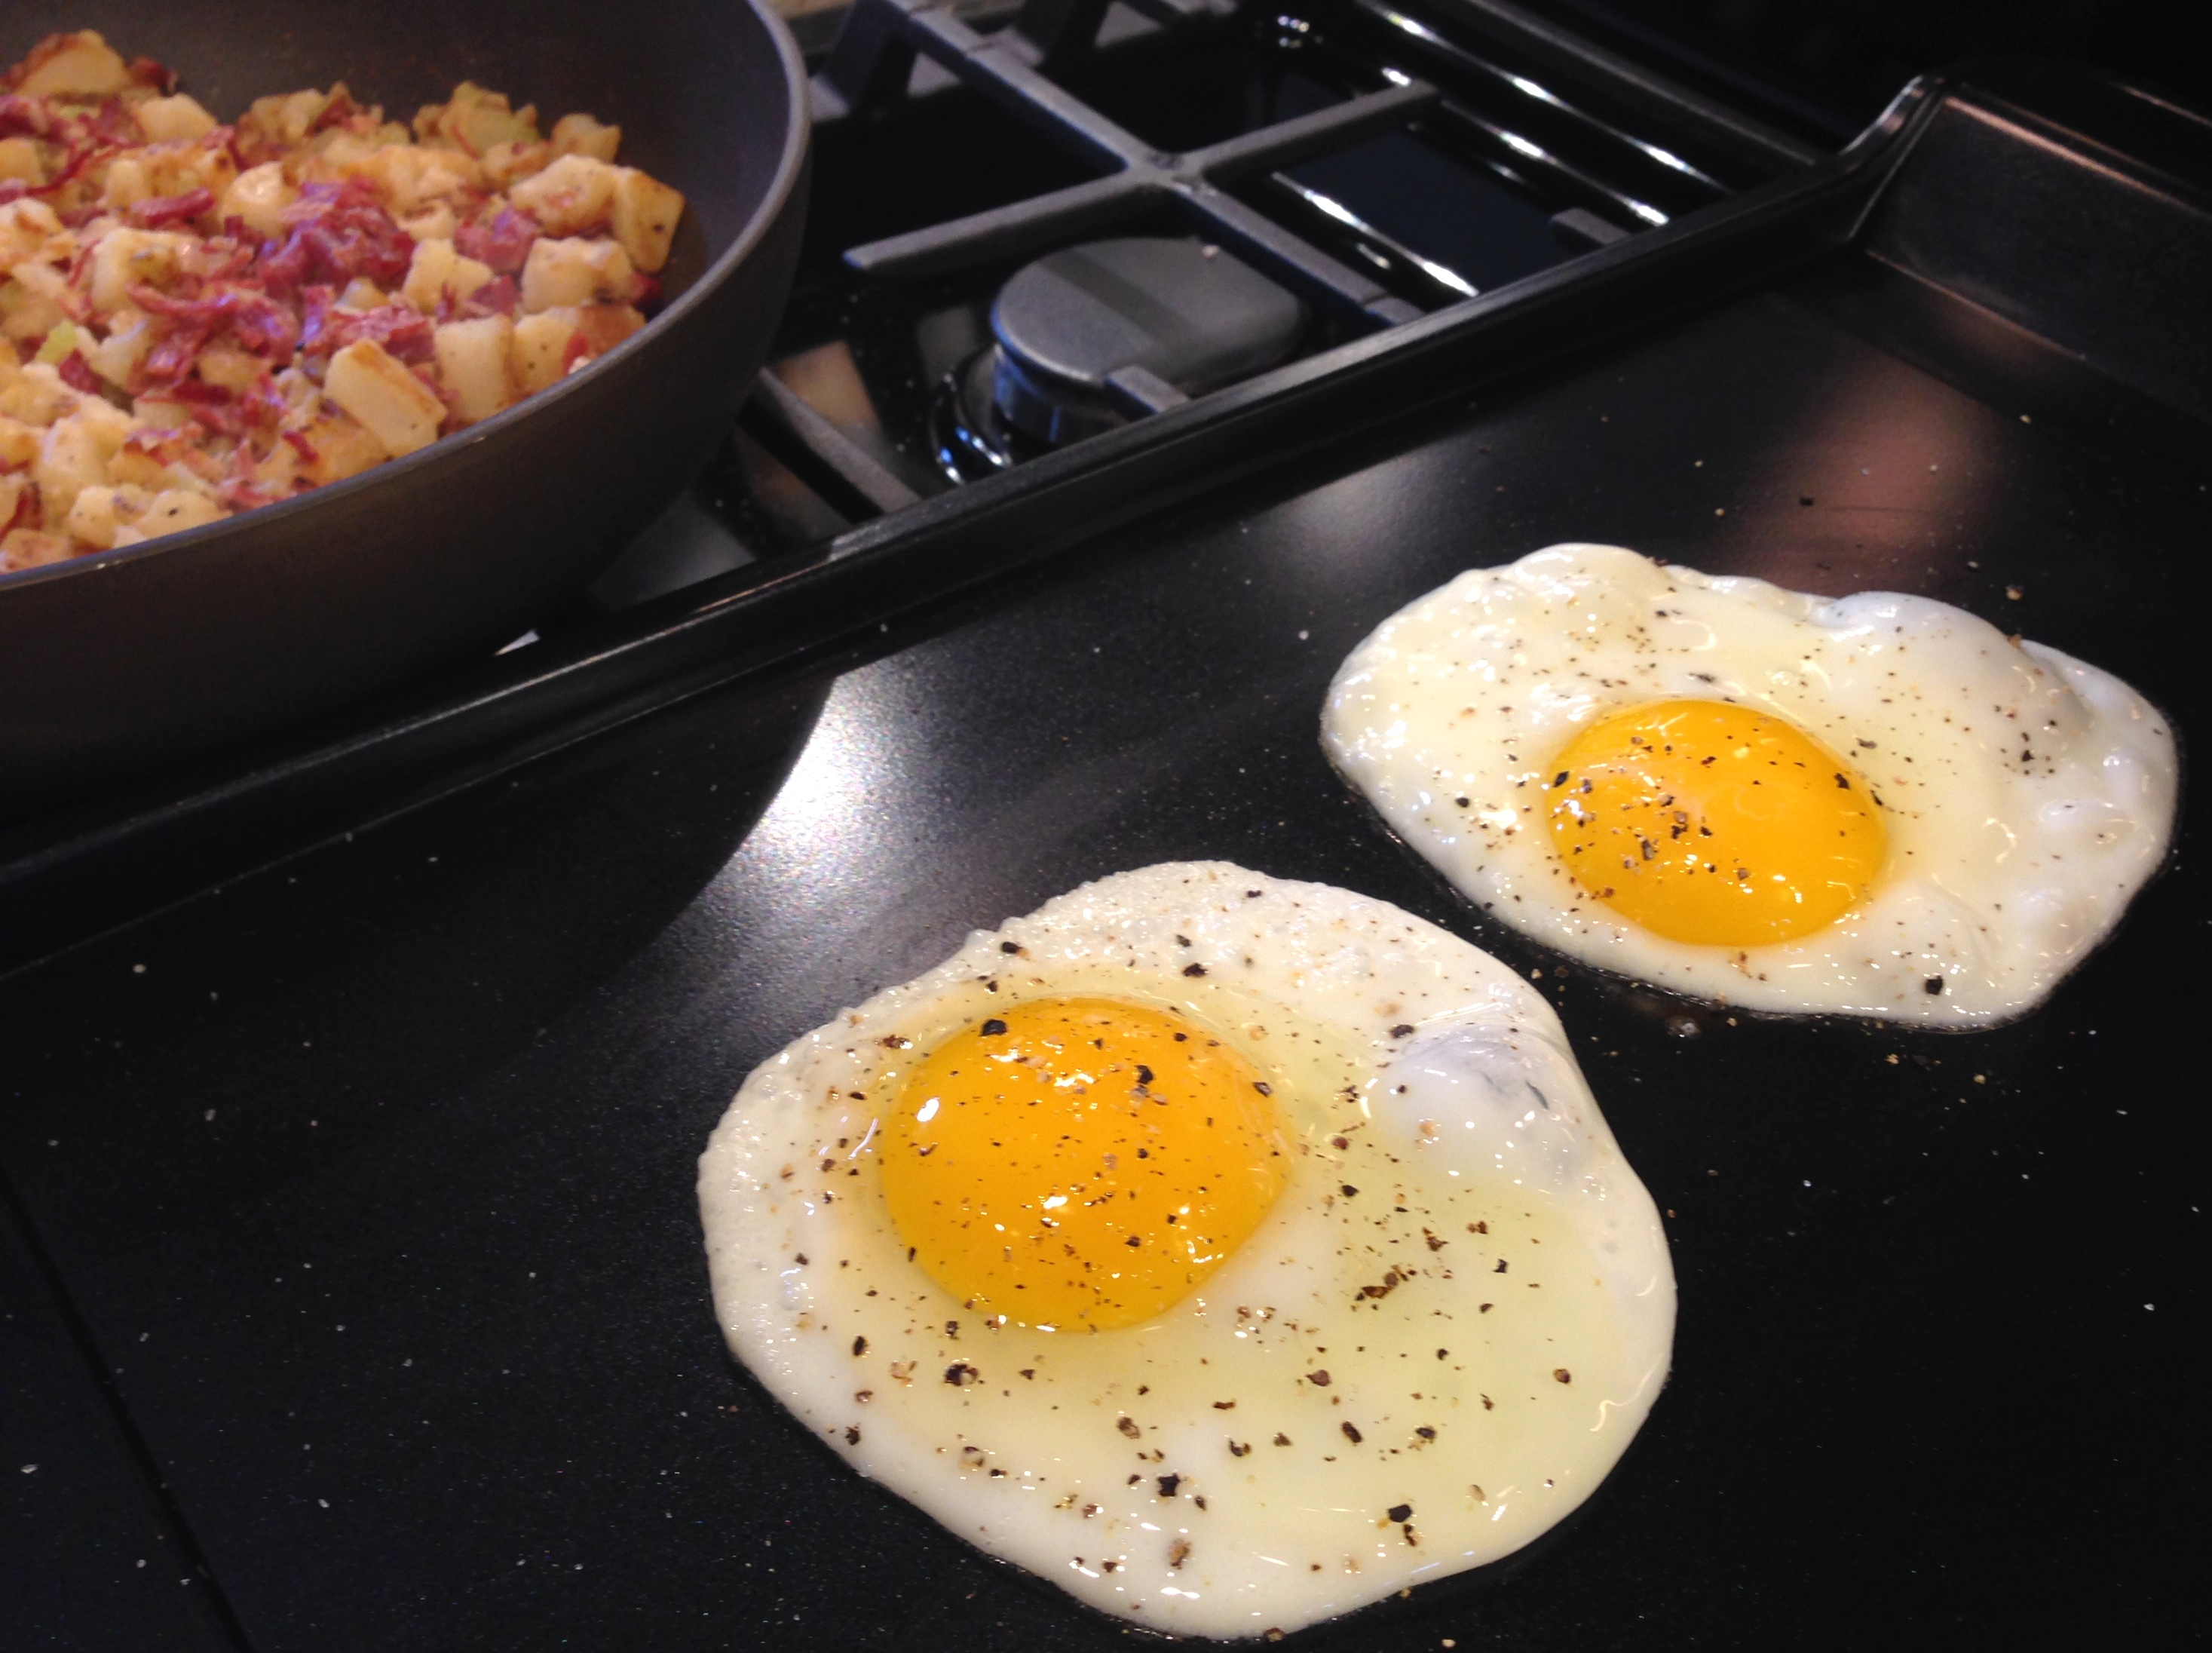 Griddle cook the eggs